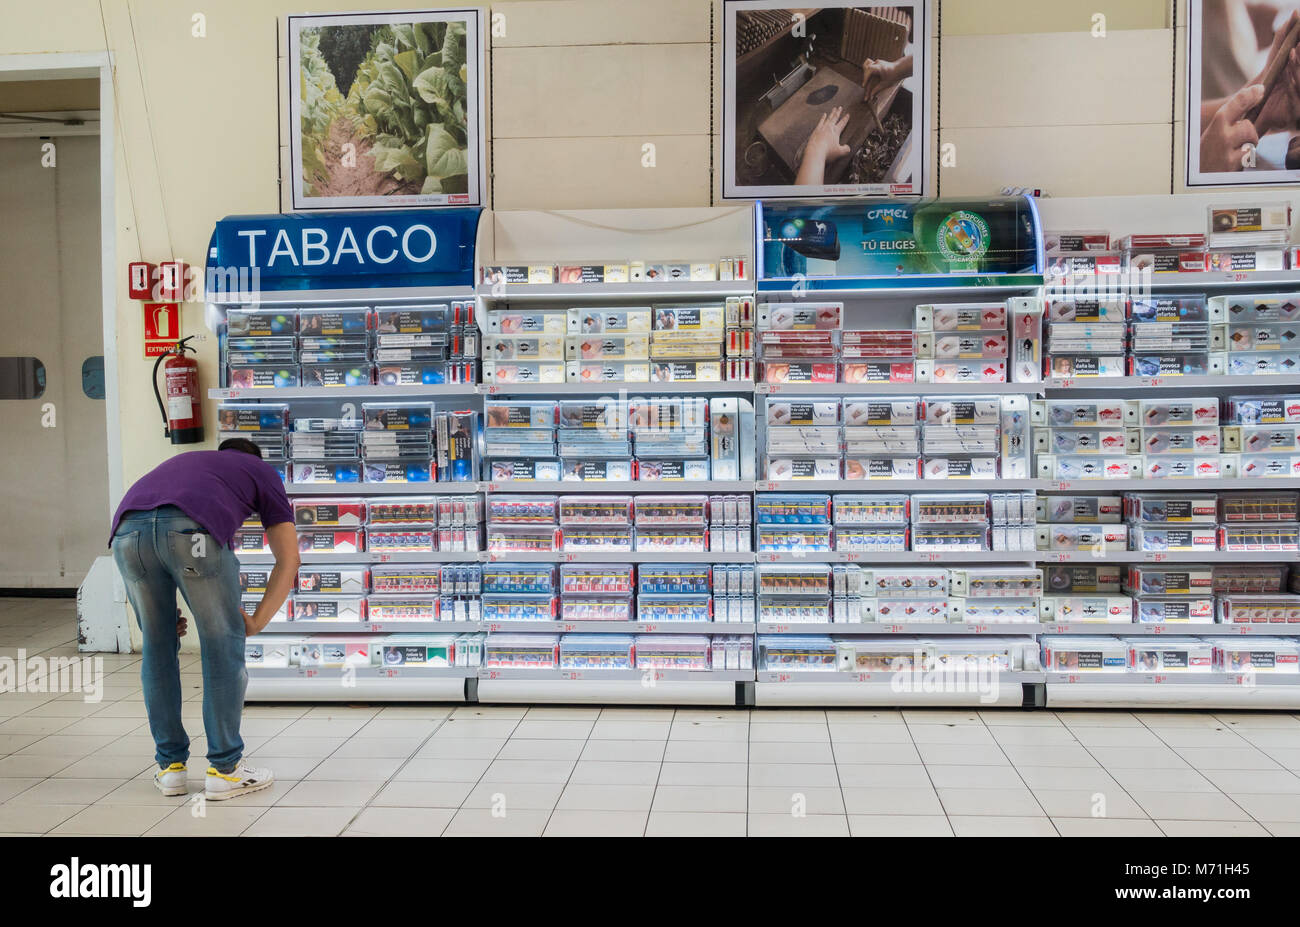 Best place to buy cigarettes Marlboro in paphos